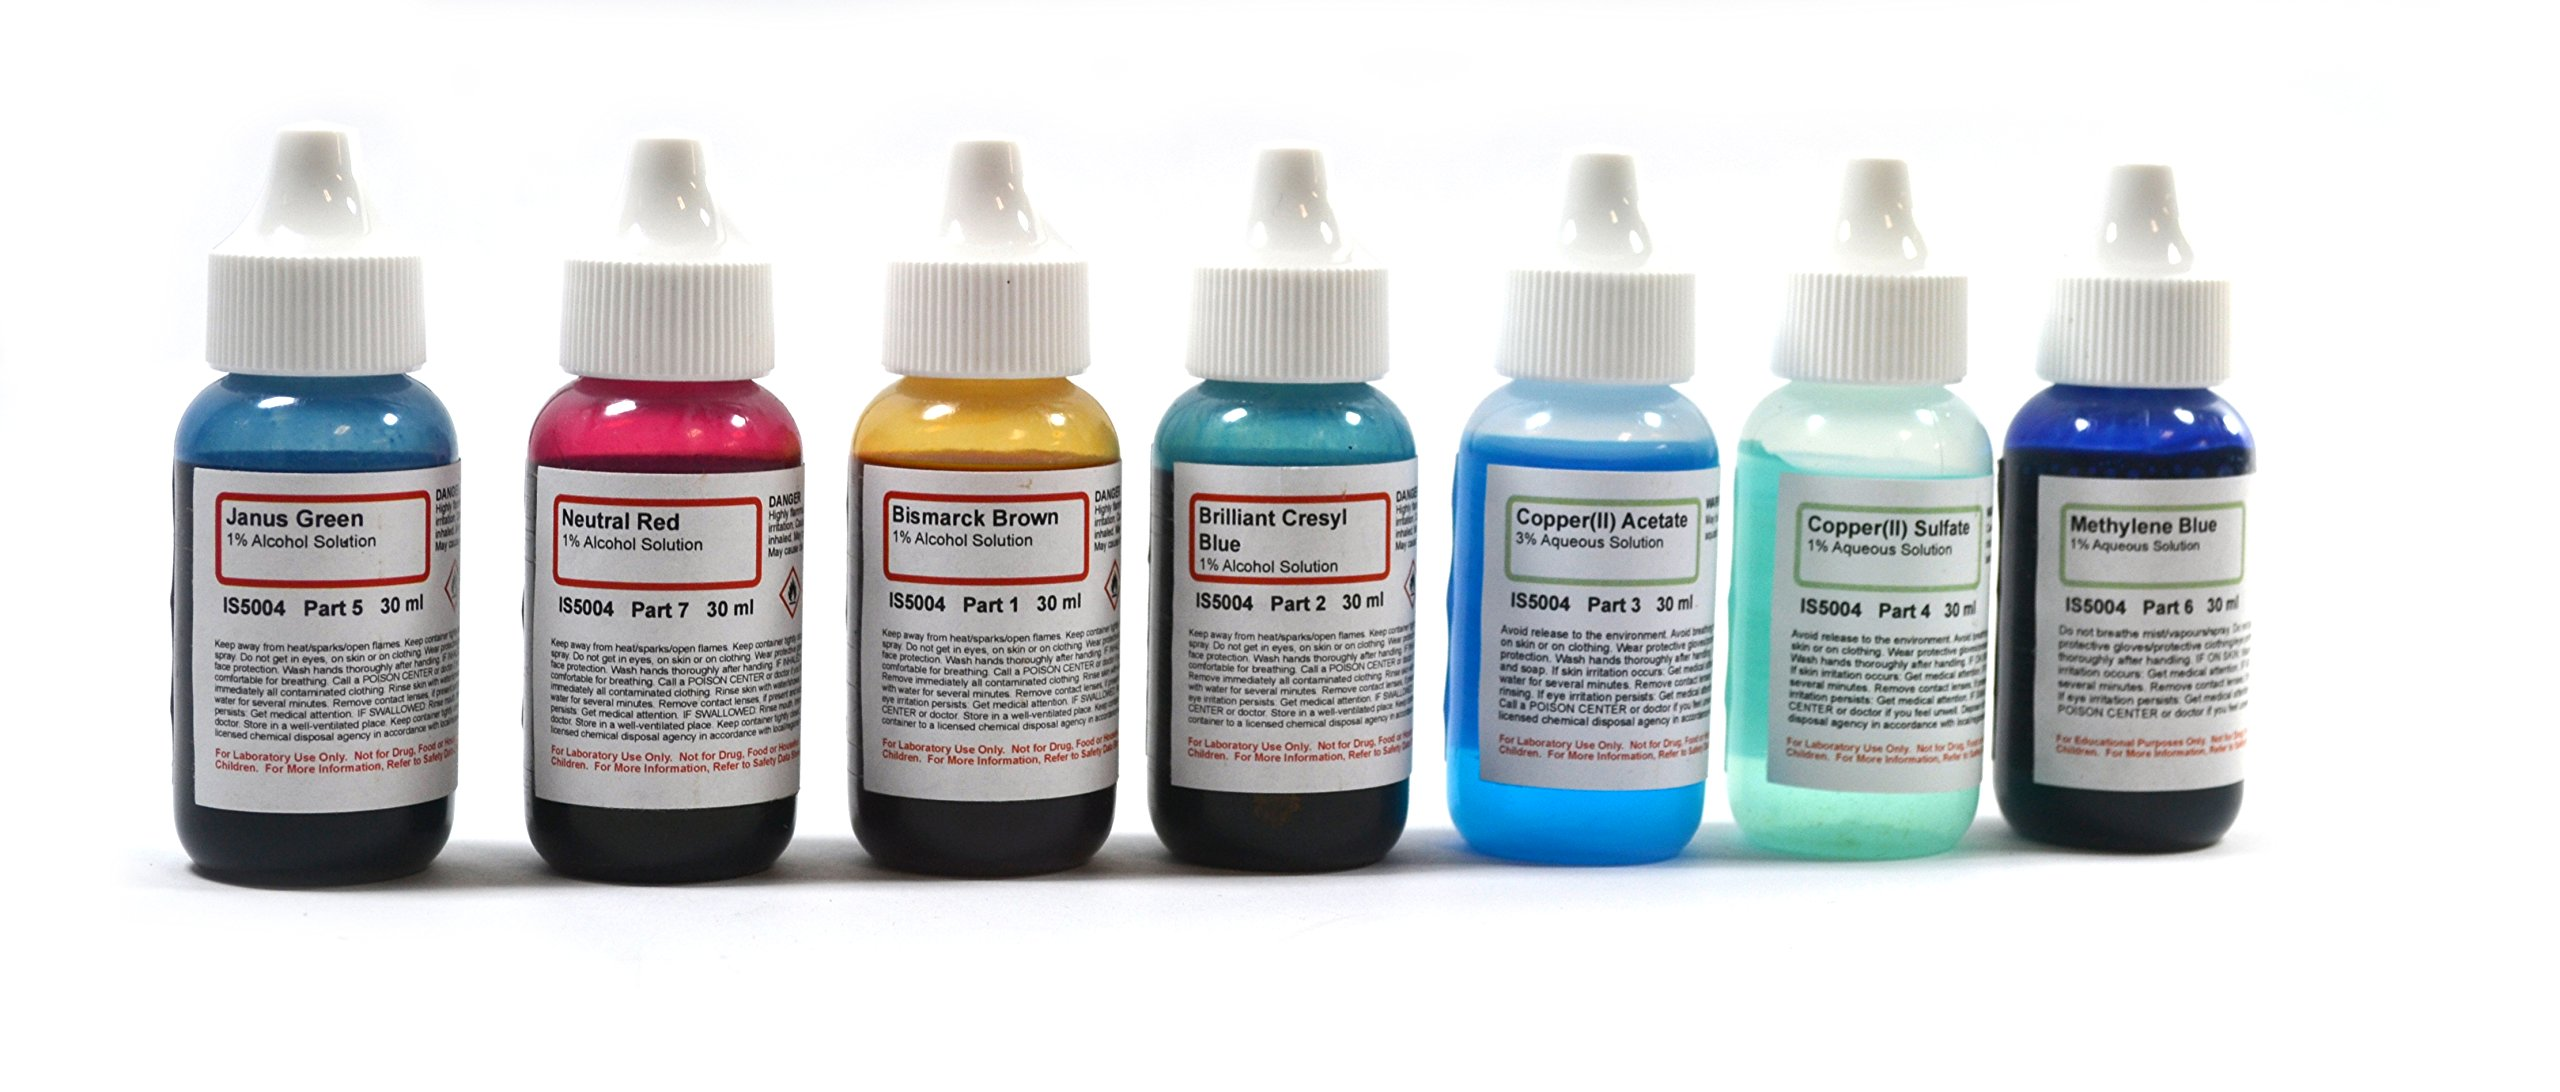 Innovating Science Microscope Stains Vital Stain Kit, 7 Bottles of Different Stains